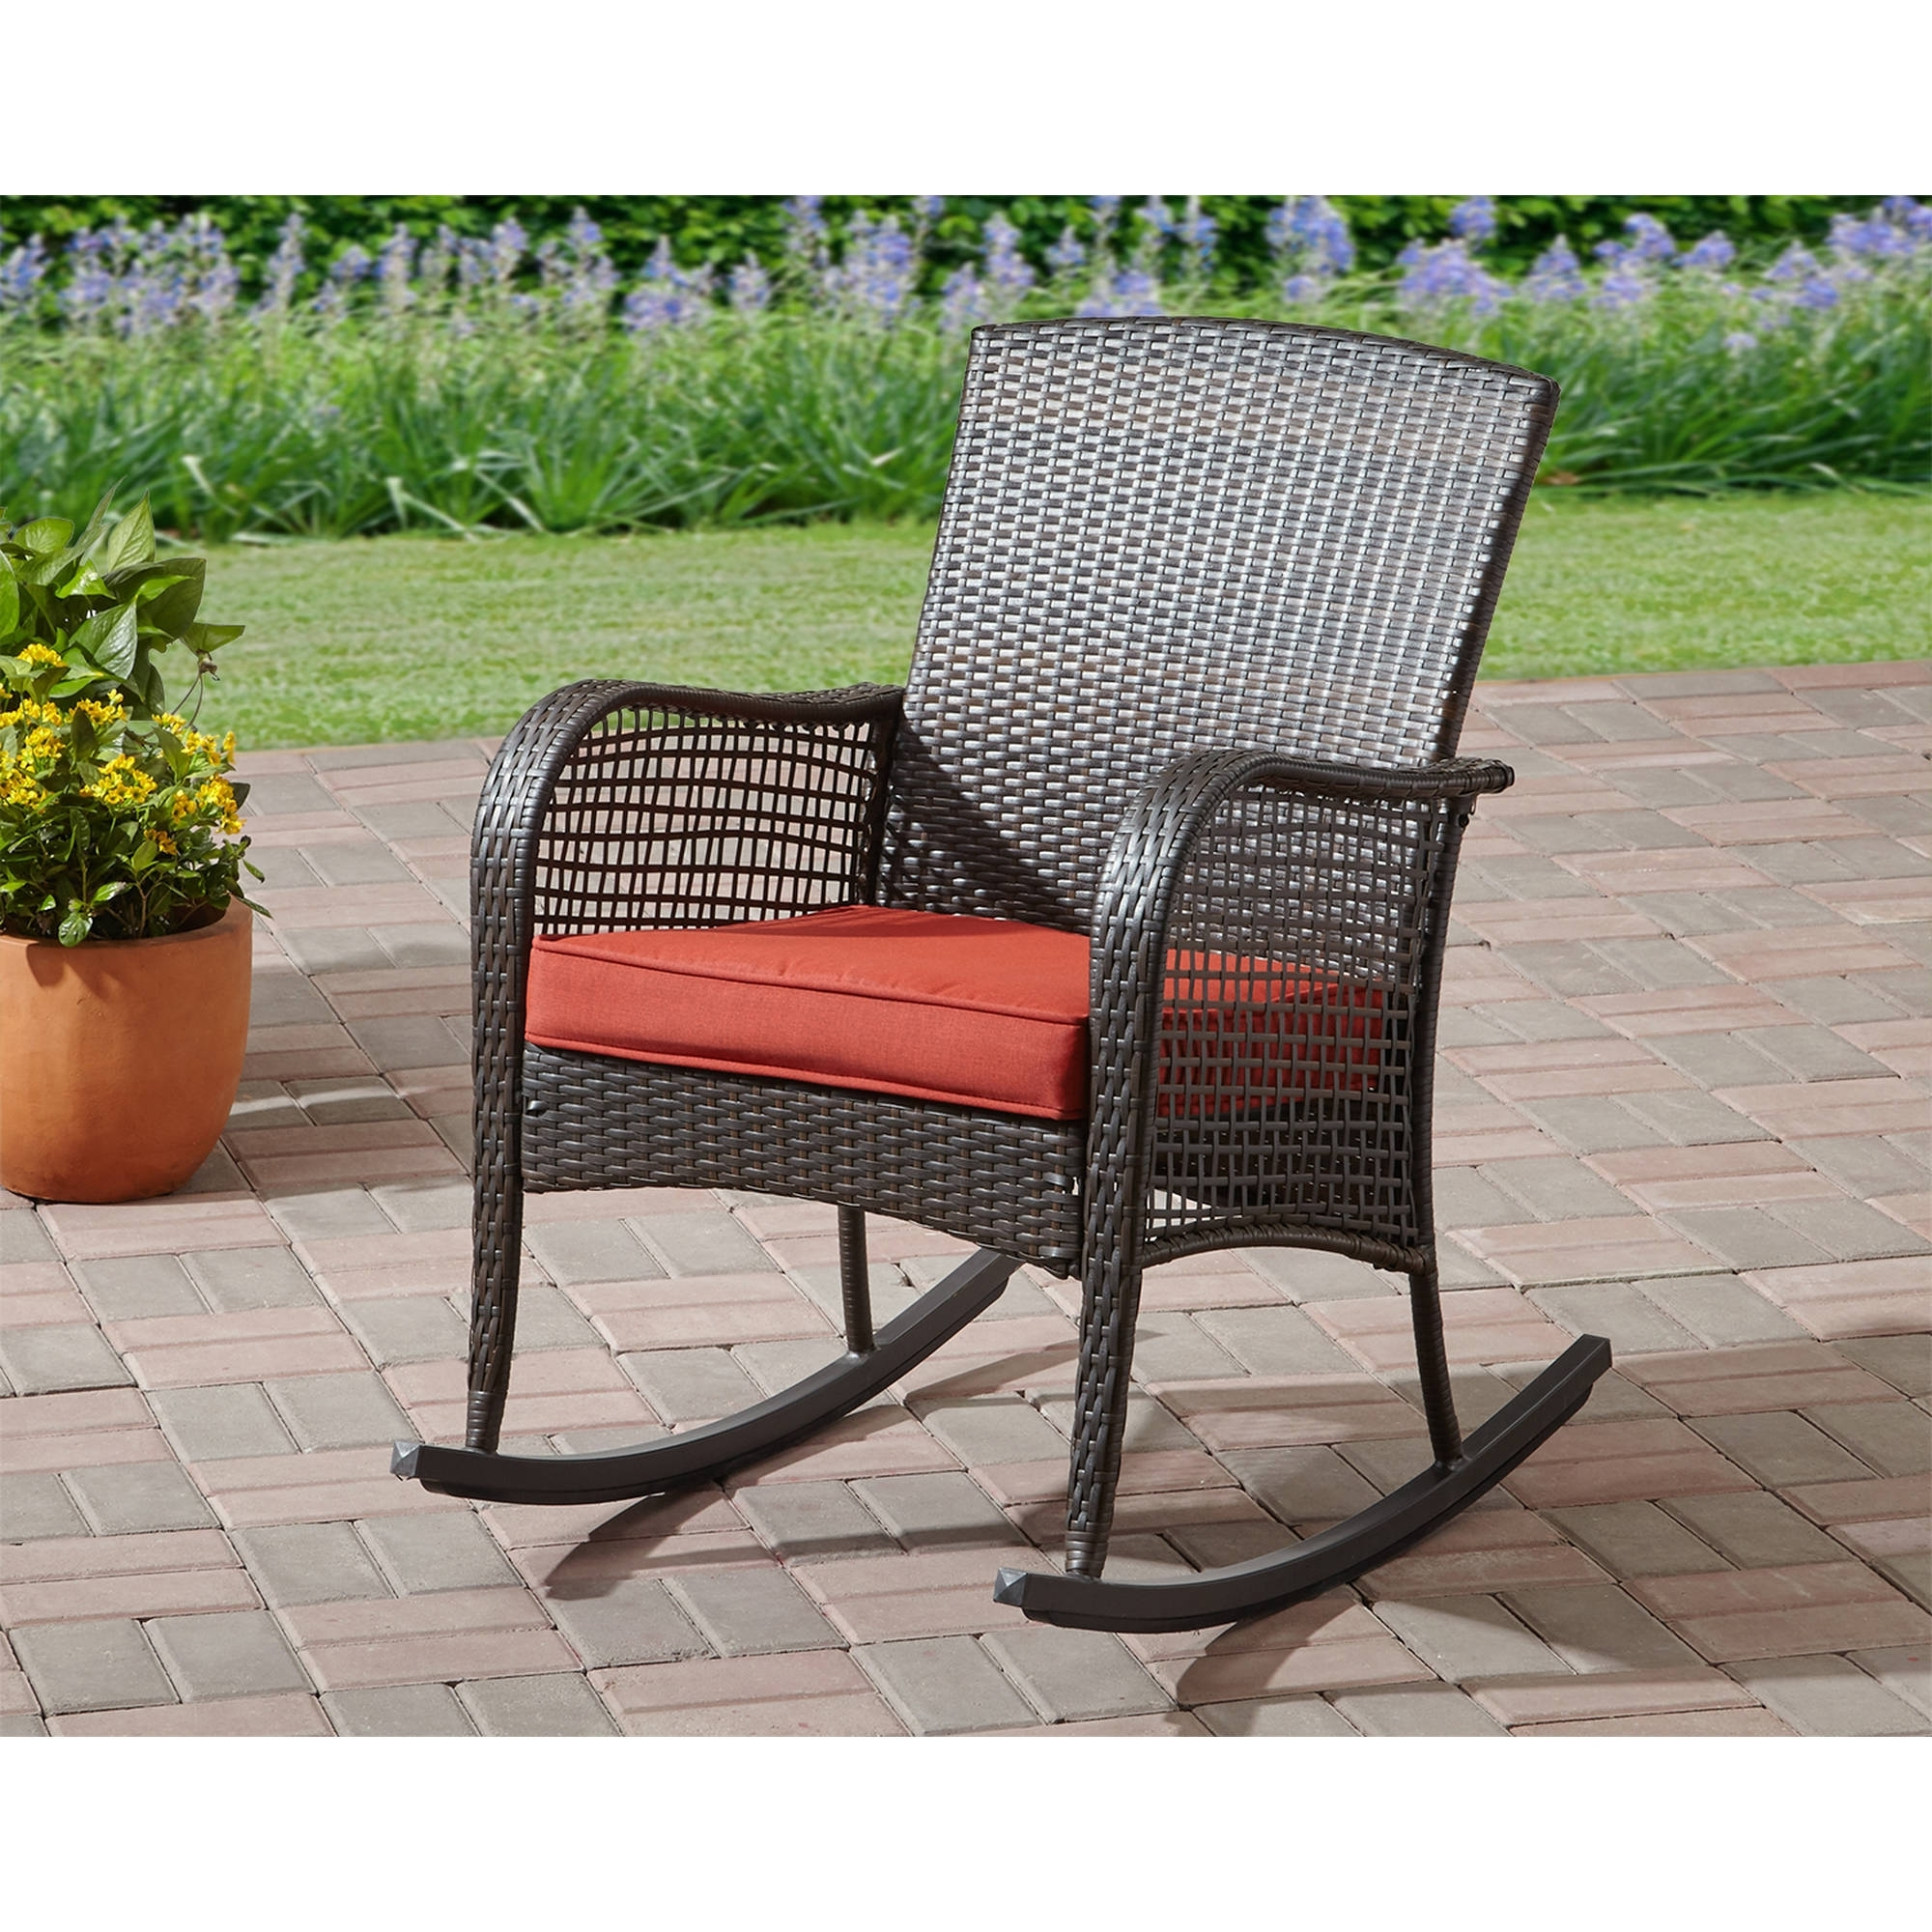 Resin Wicker Patio Rocking Chairs Throughout Preferred Mainstays Cambridge Park Wicker Outdoor Rocking Chair – Walmart (View 7 of 15)